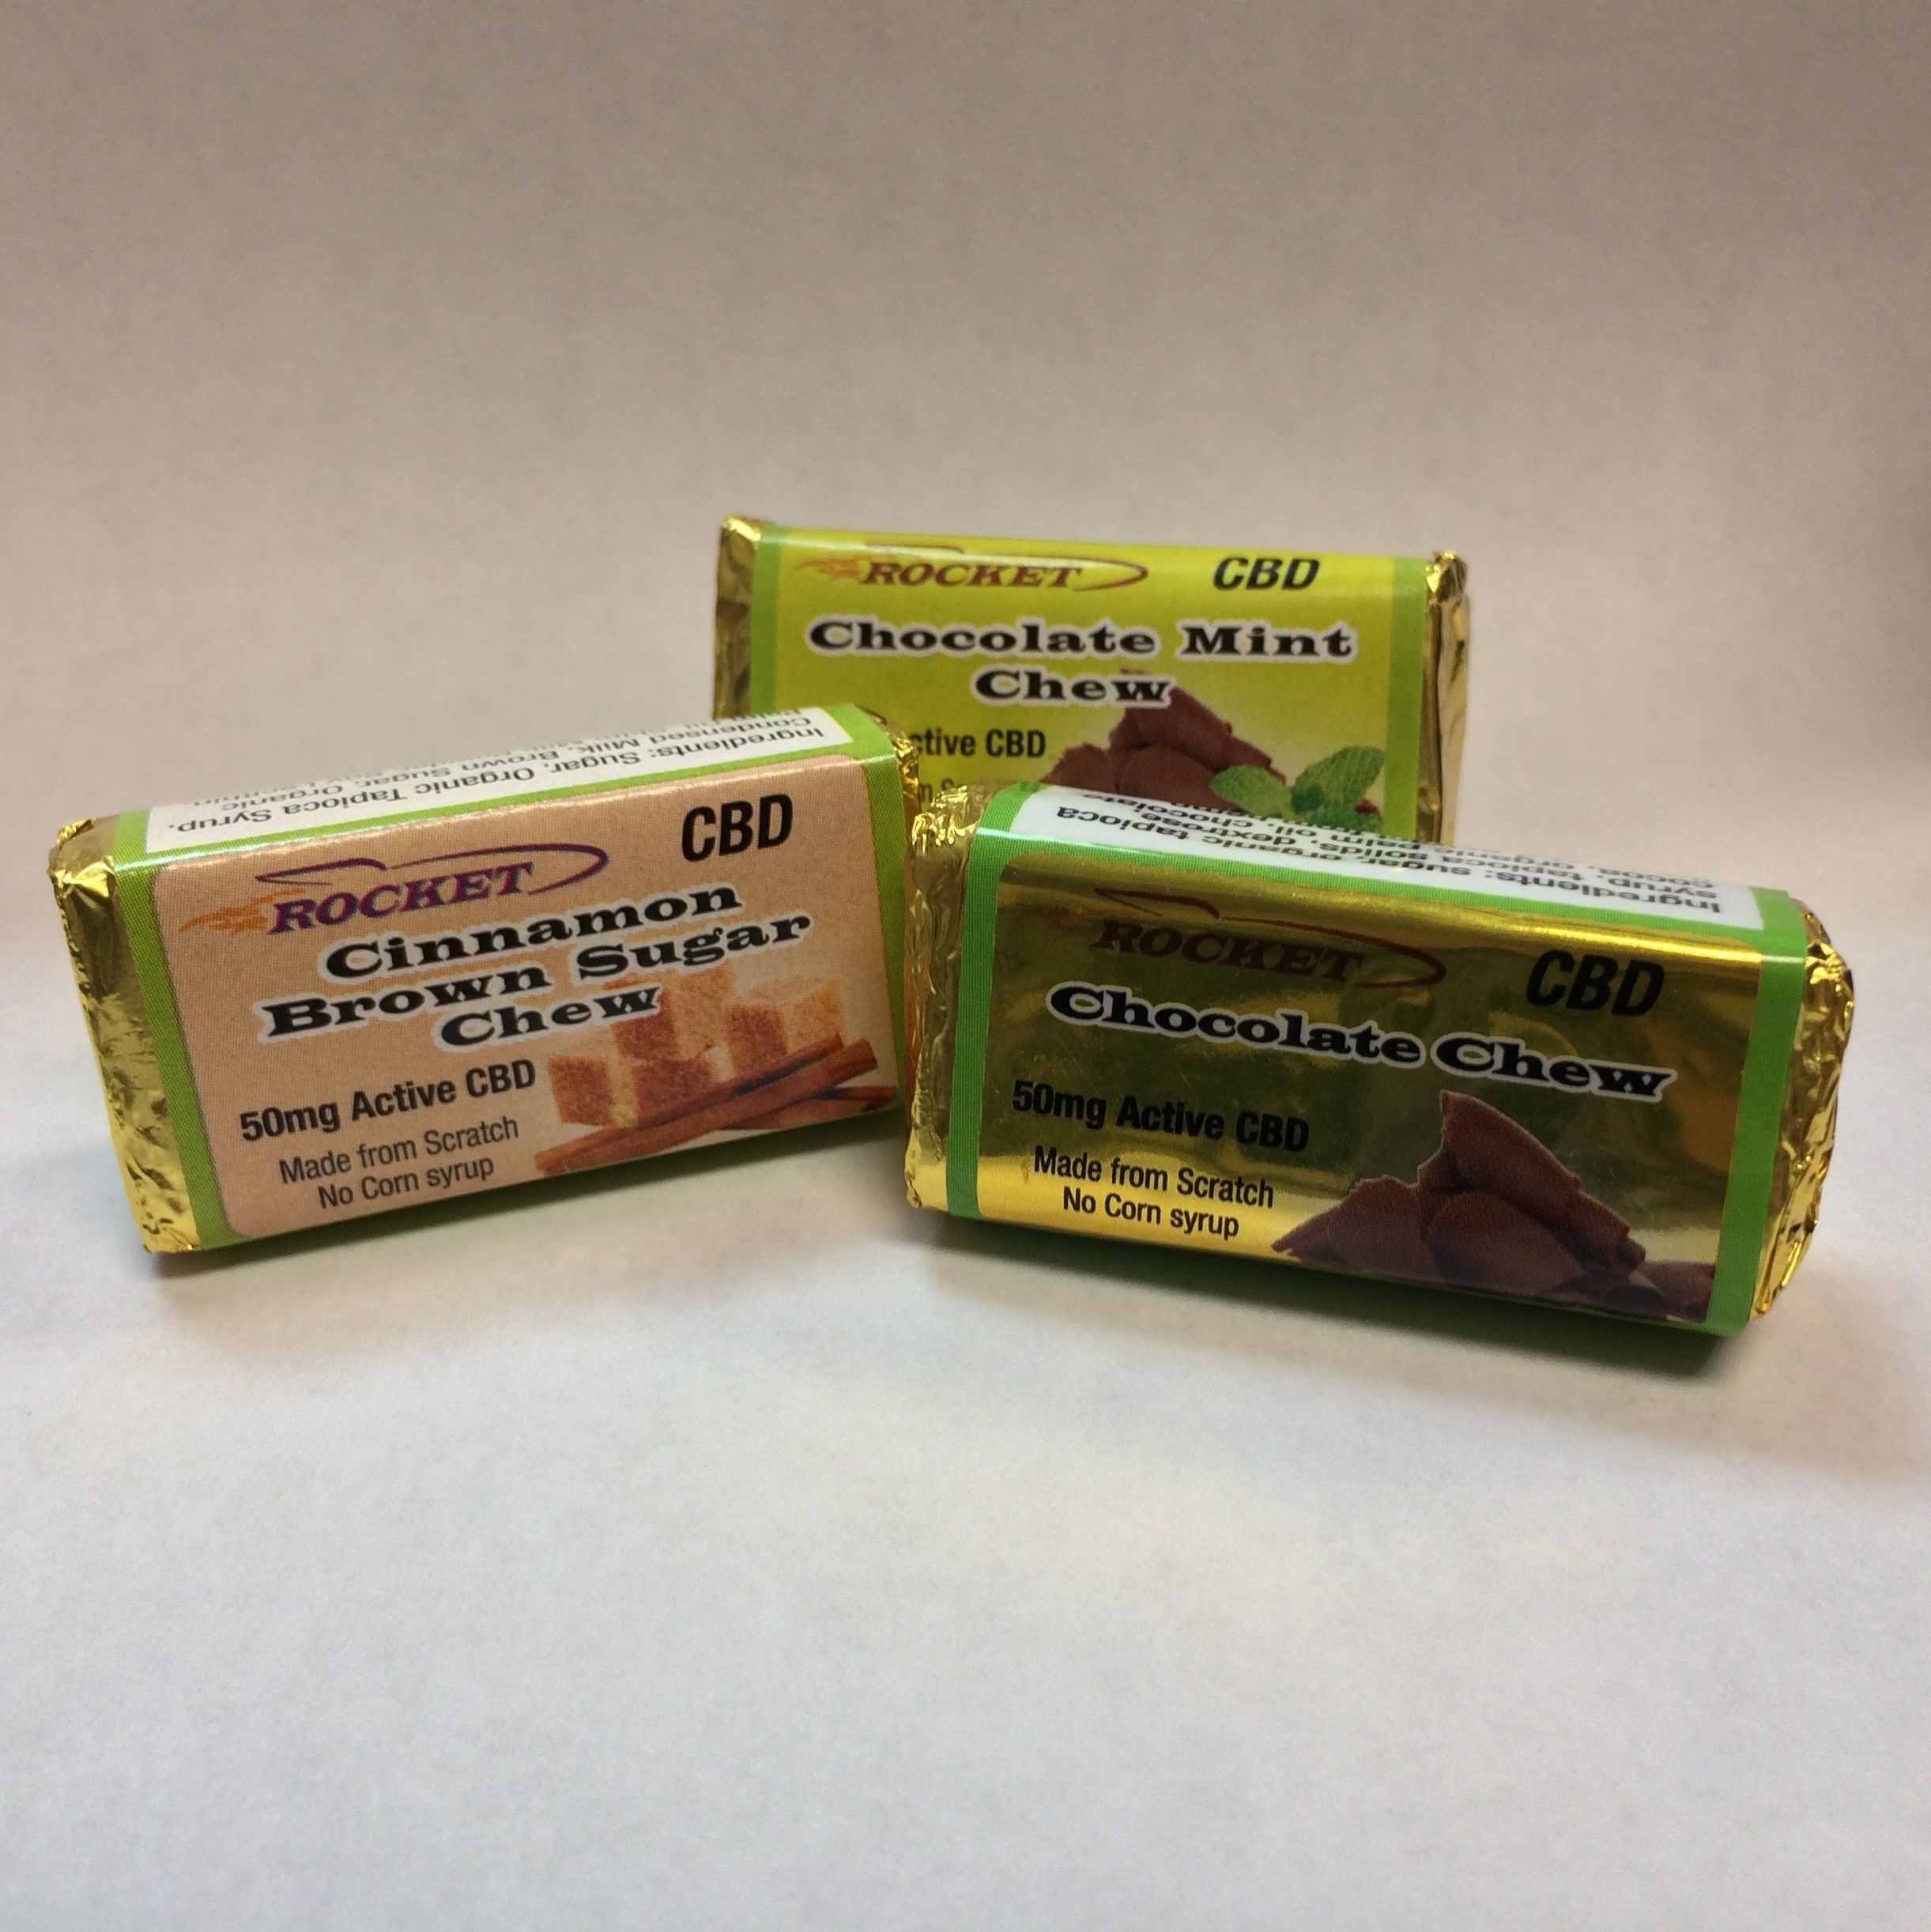 Rocket Chews 5 For $55 (50 Mg Each)